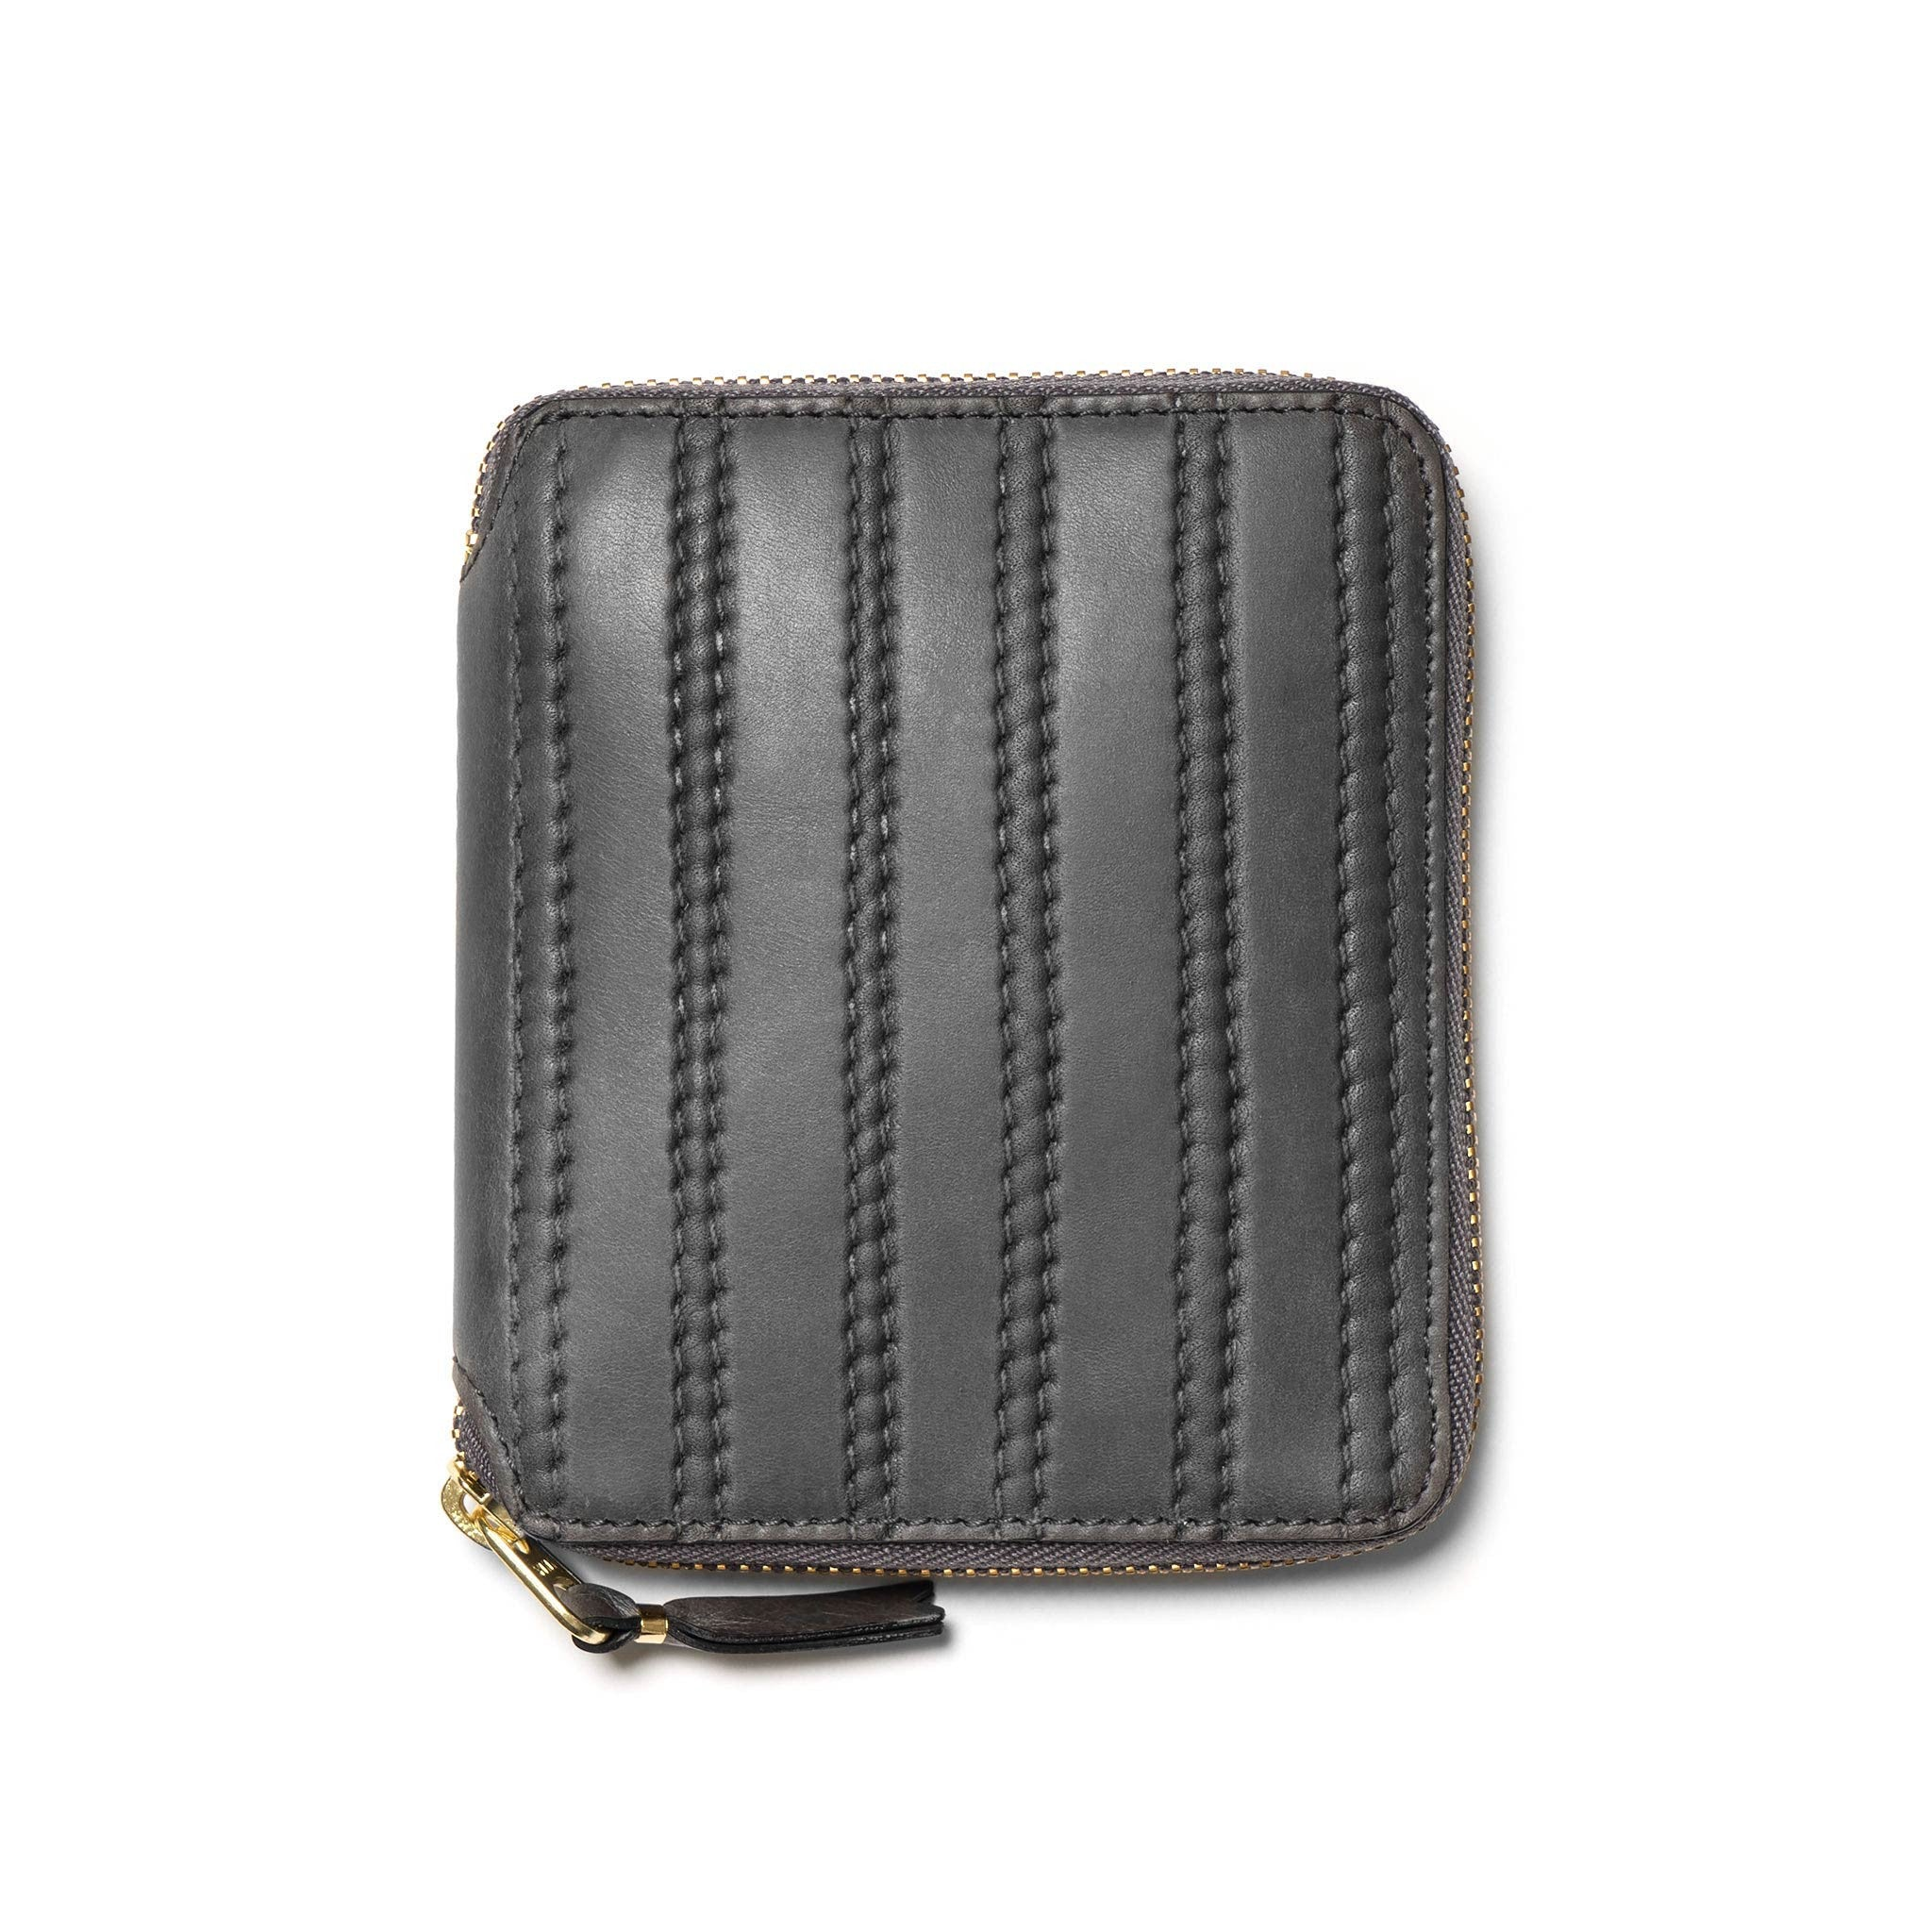 Comme des Gar?ons Embossed zip purse Order Online Quality For Sale Free Shipping 36yEueSu